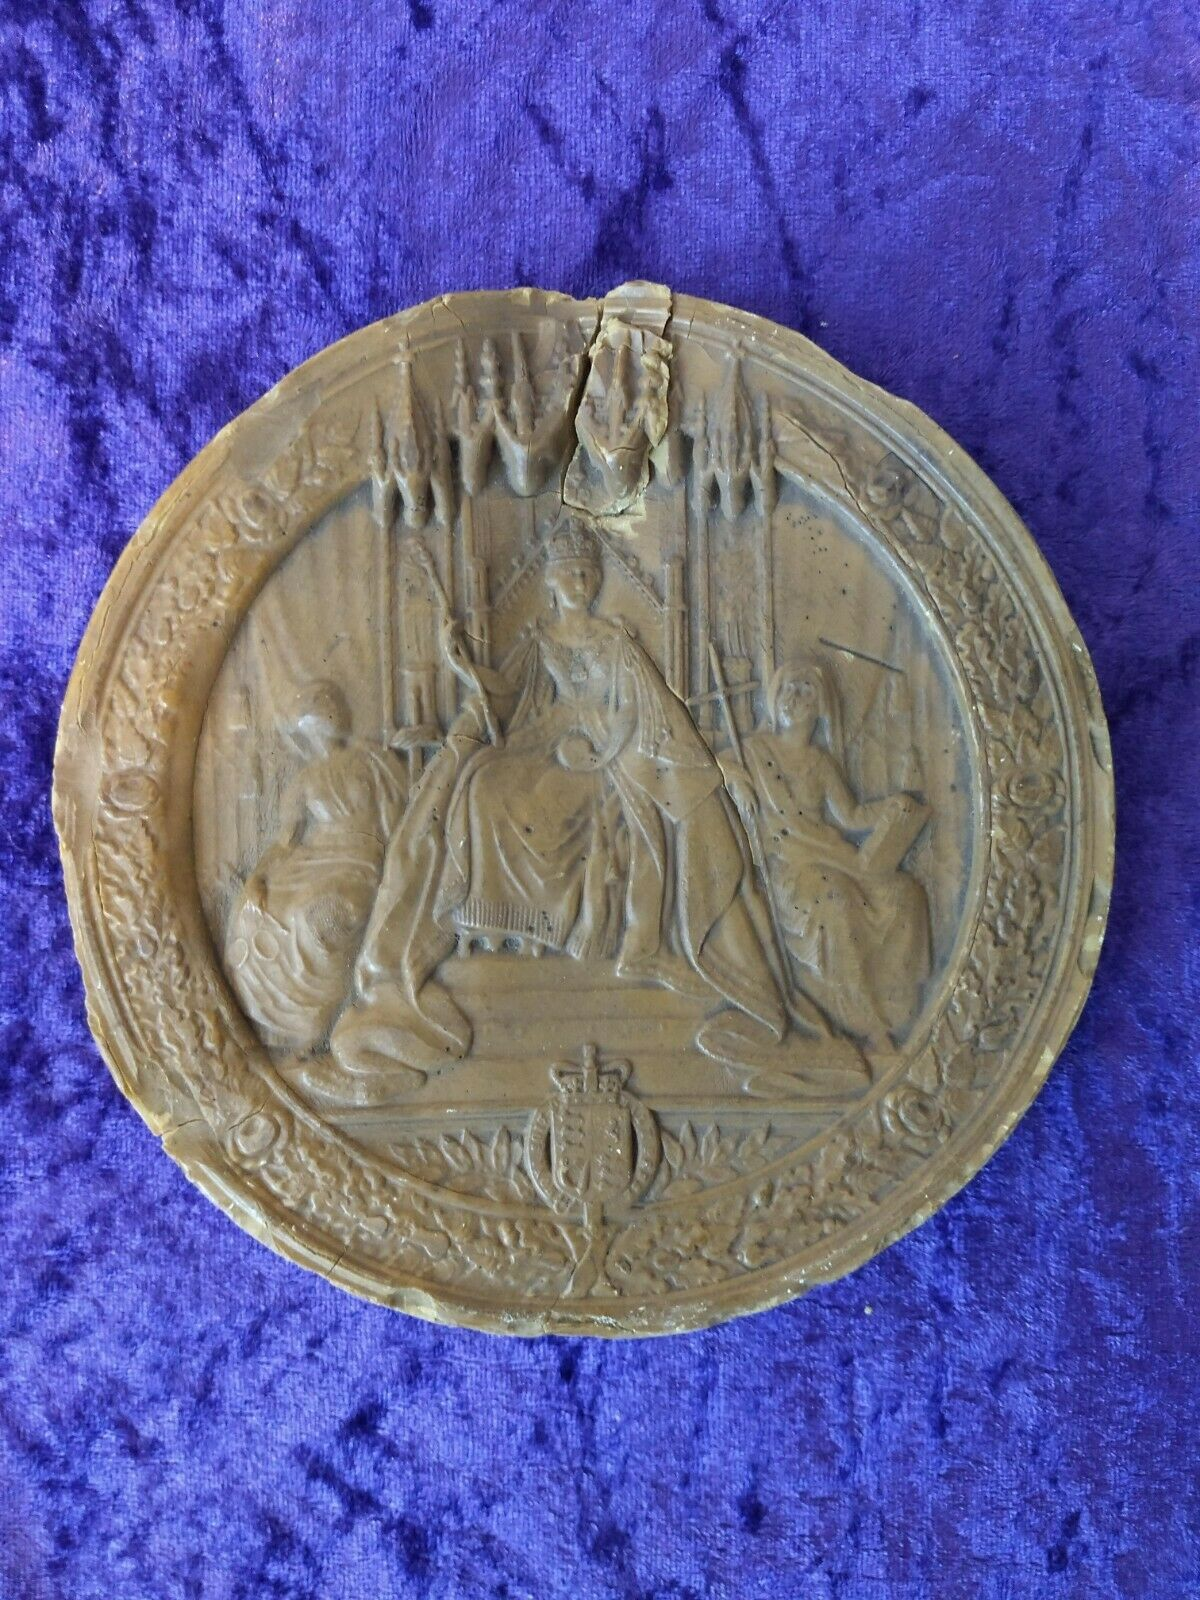 Replica Of Queen Victoria Wax Great Seal of Realm 1800s 6